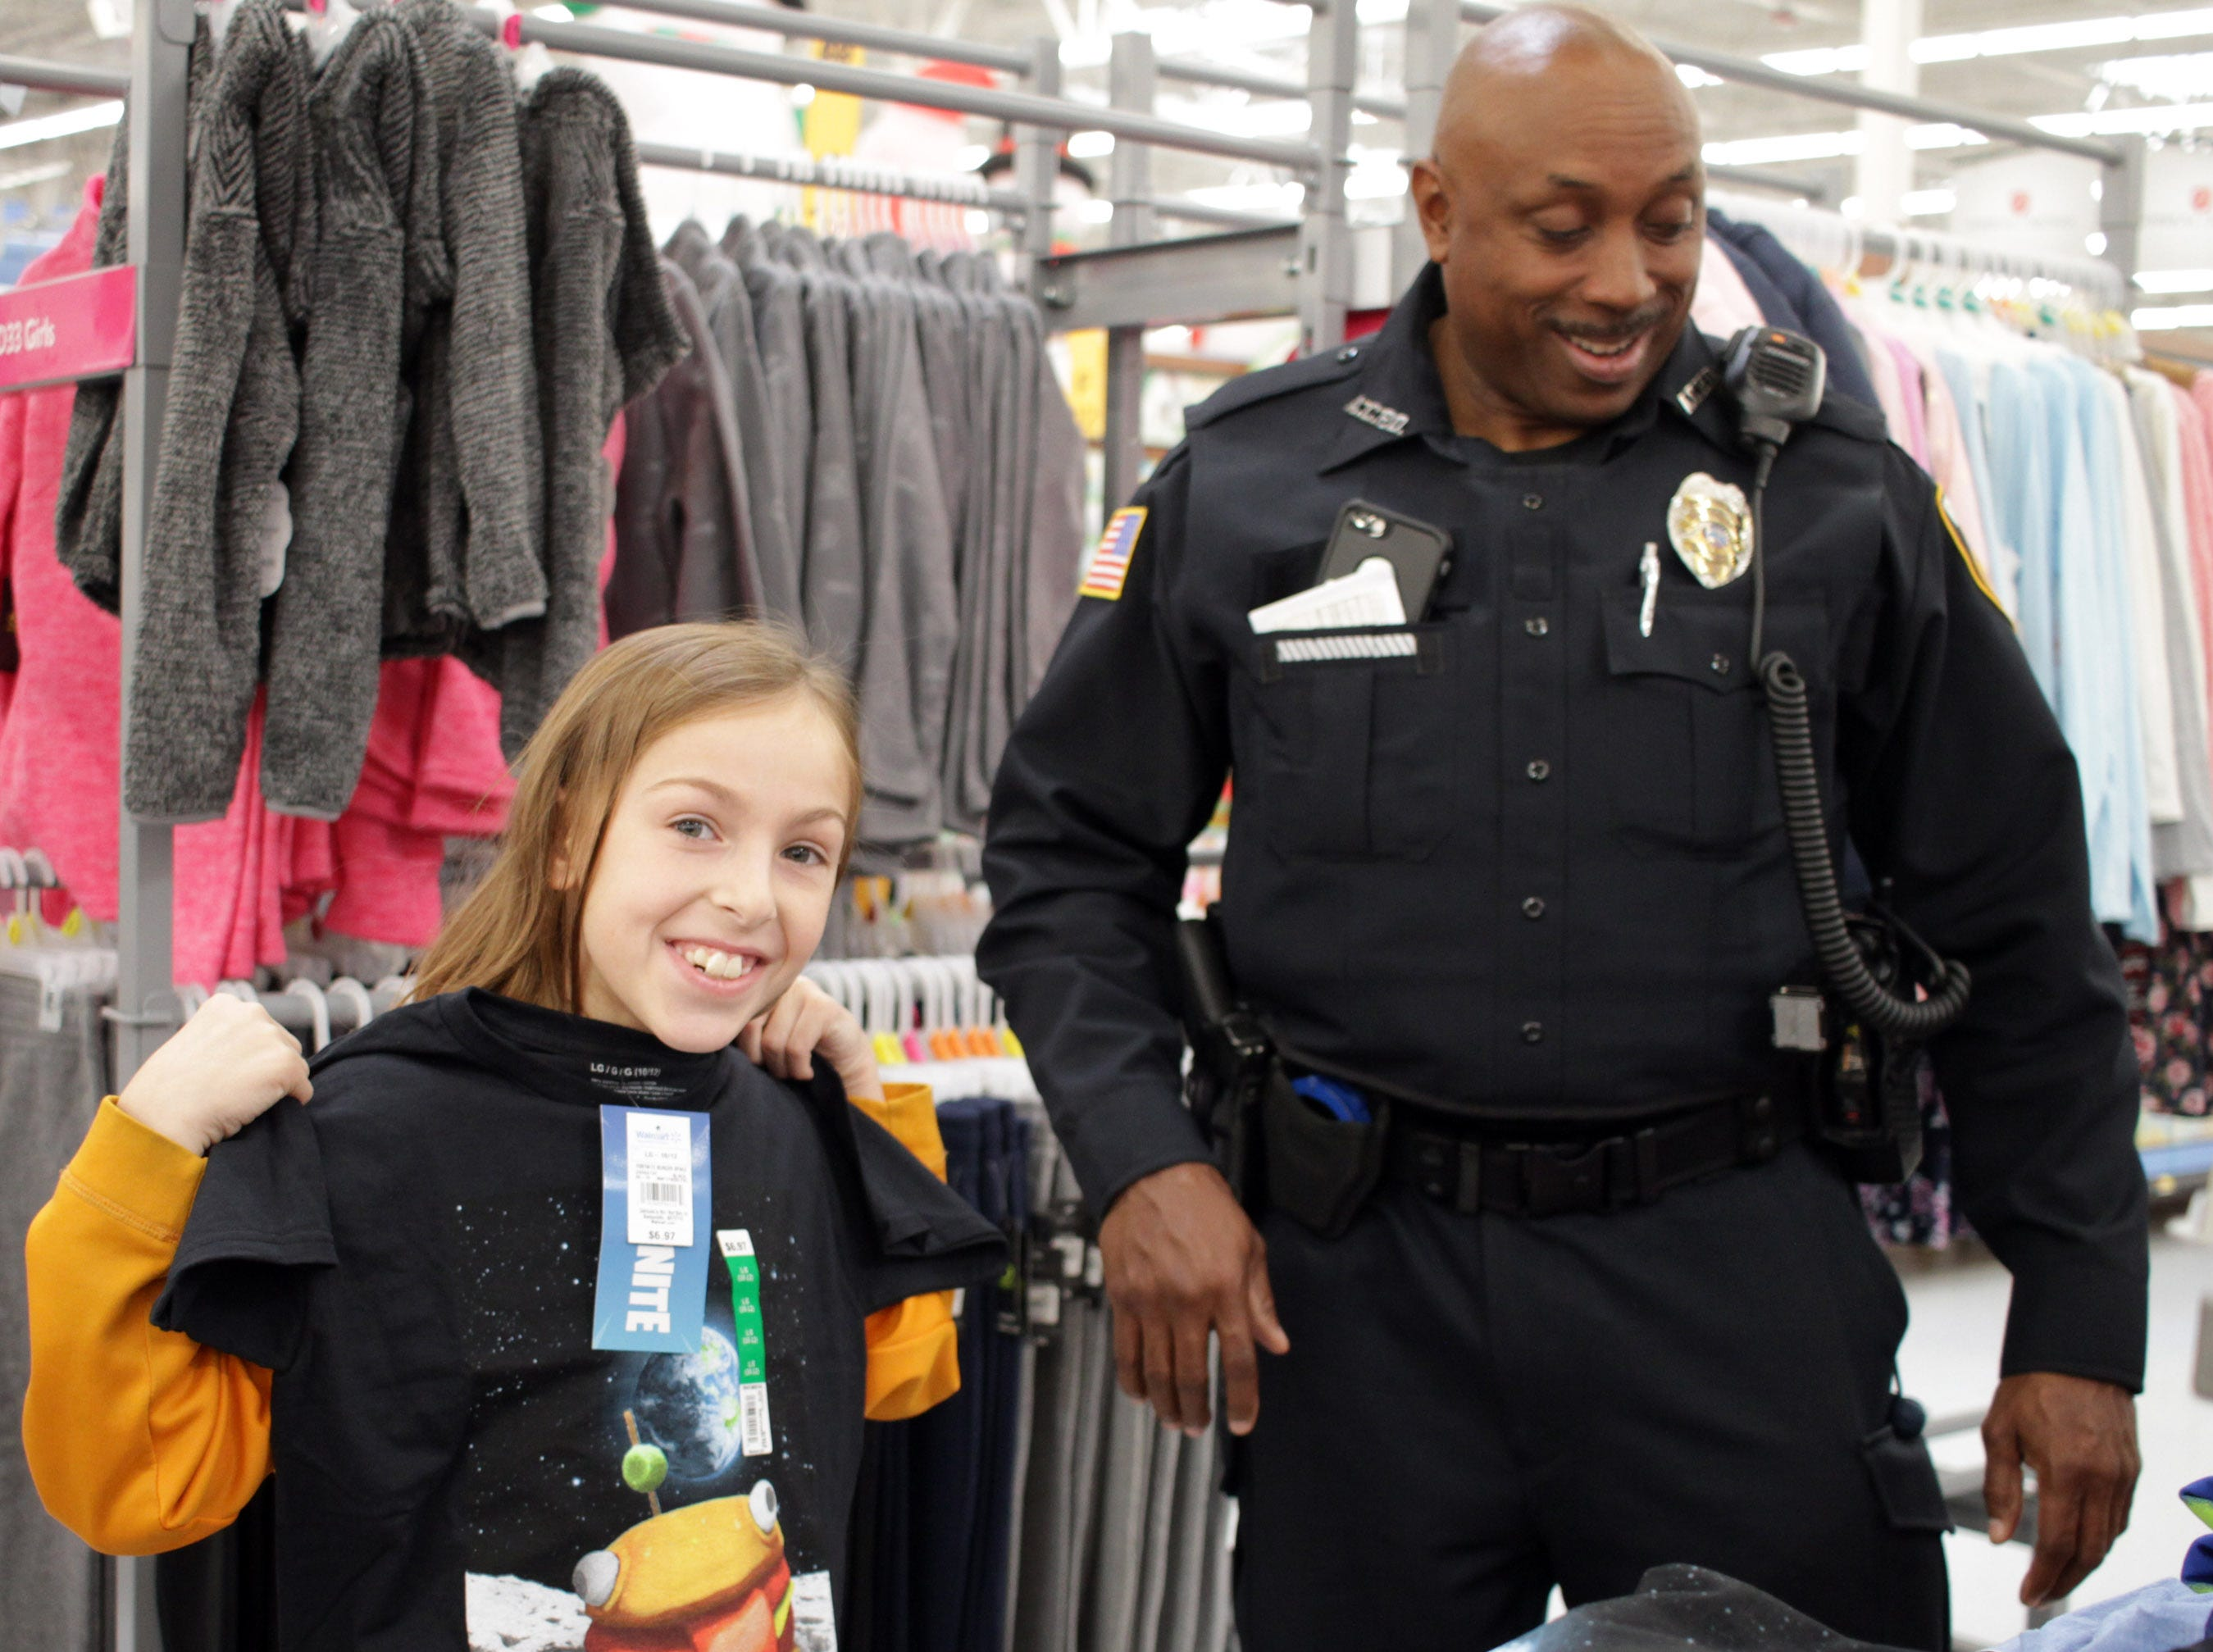 Taylor Humphrey (9) shops with Officer Steven Ellis at Shop with a Cop in Ashland City on Saturday, December 15, 2018.